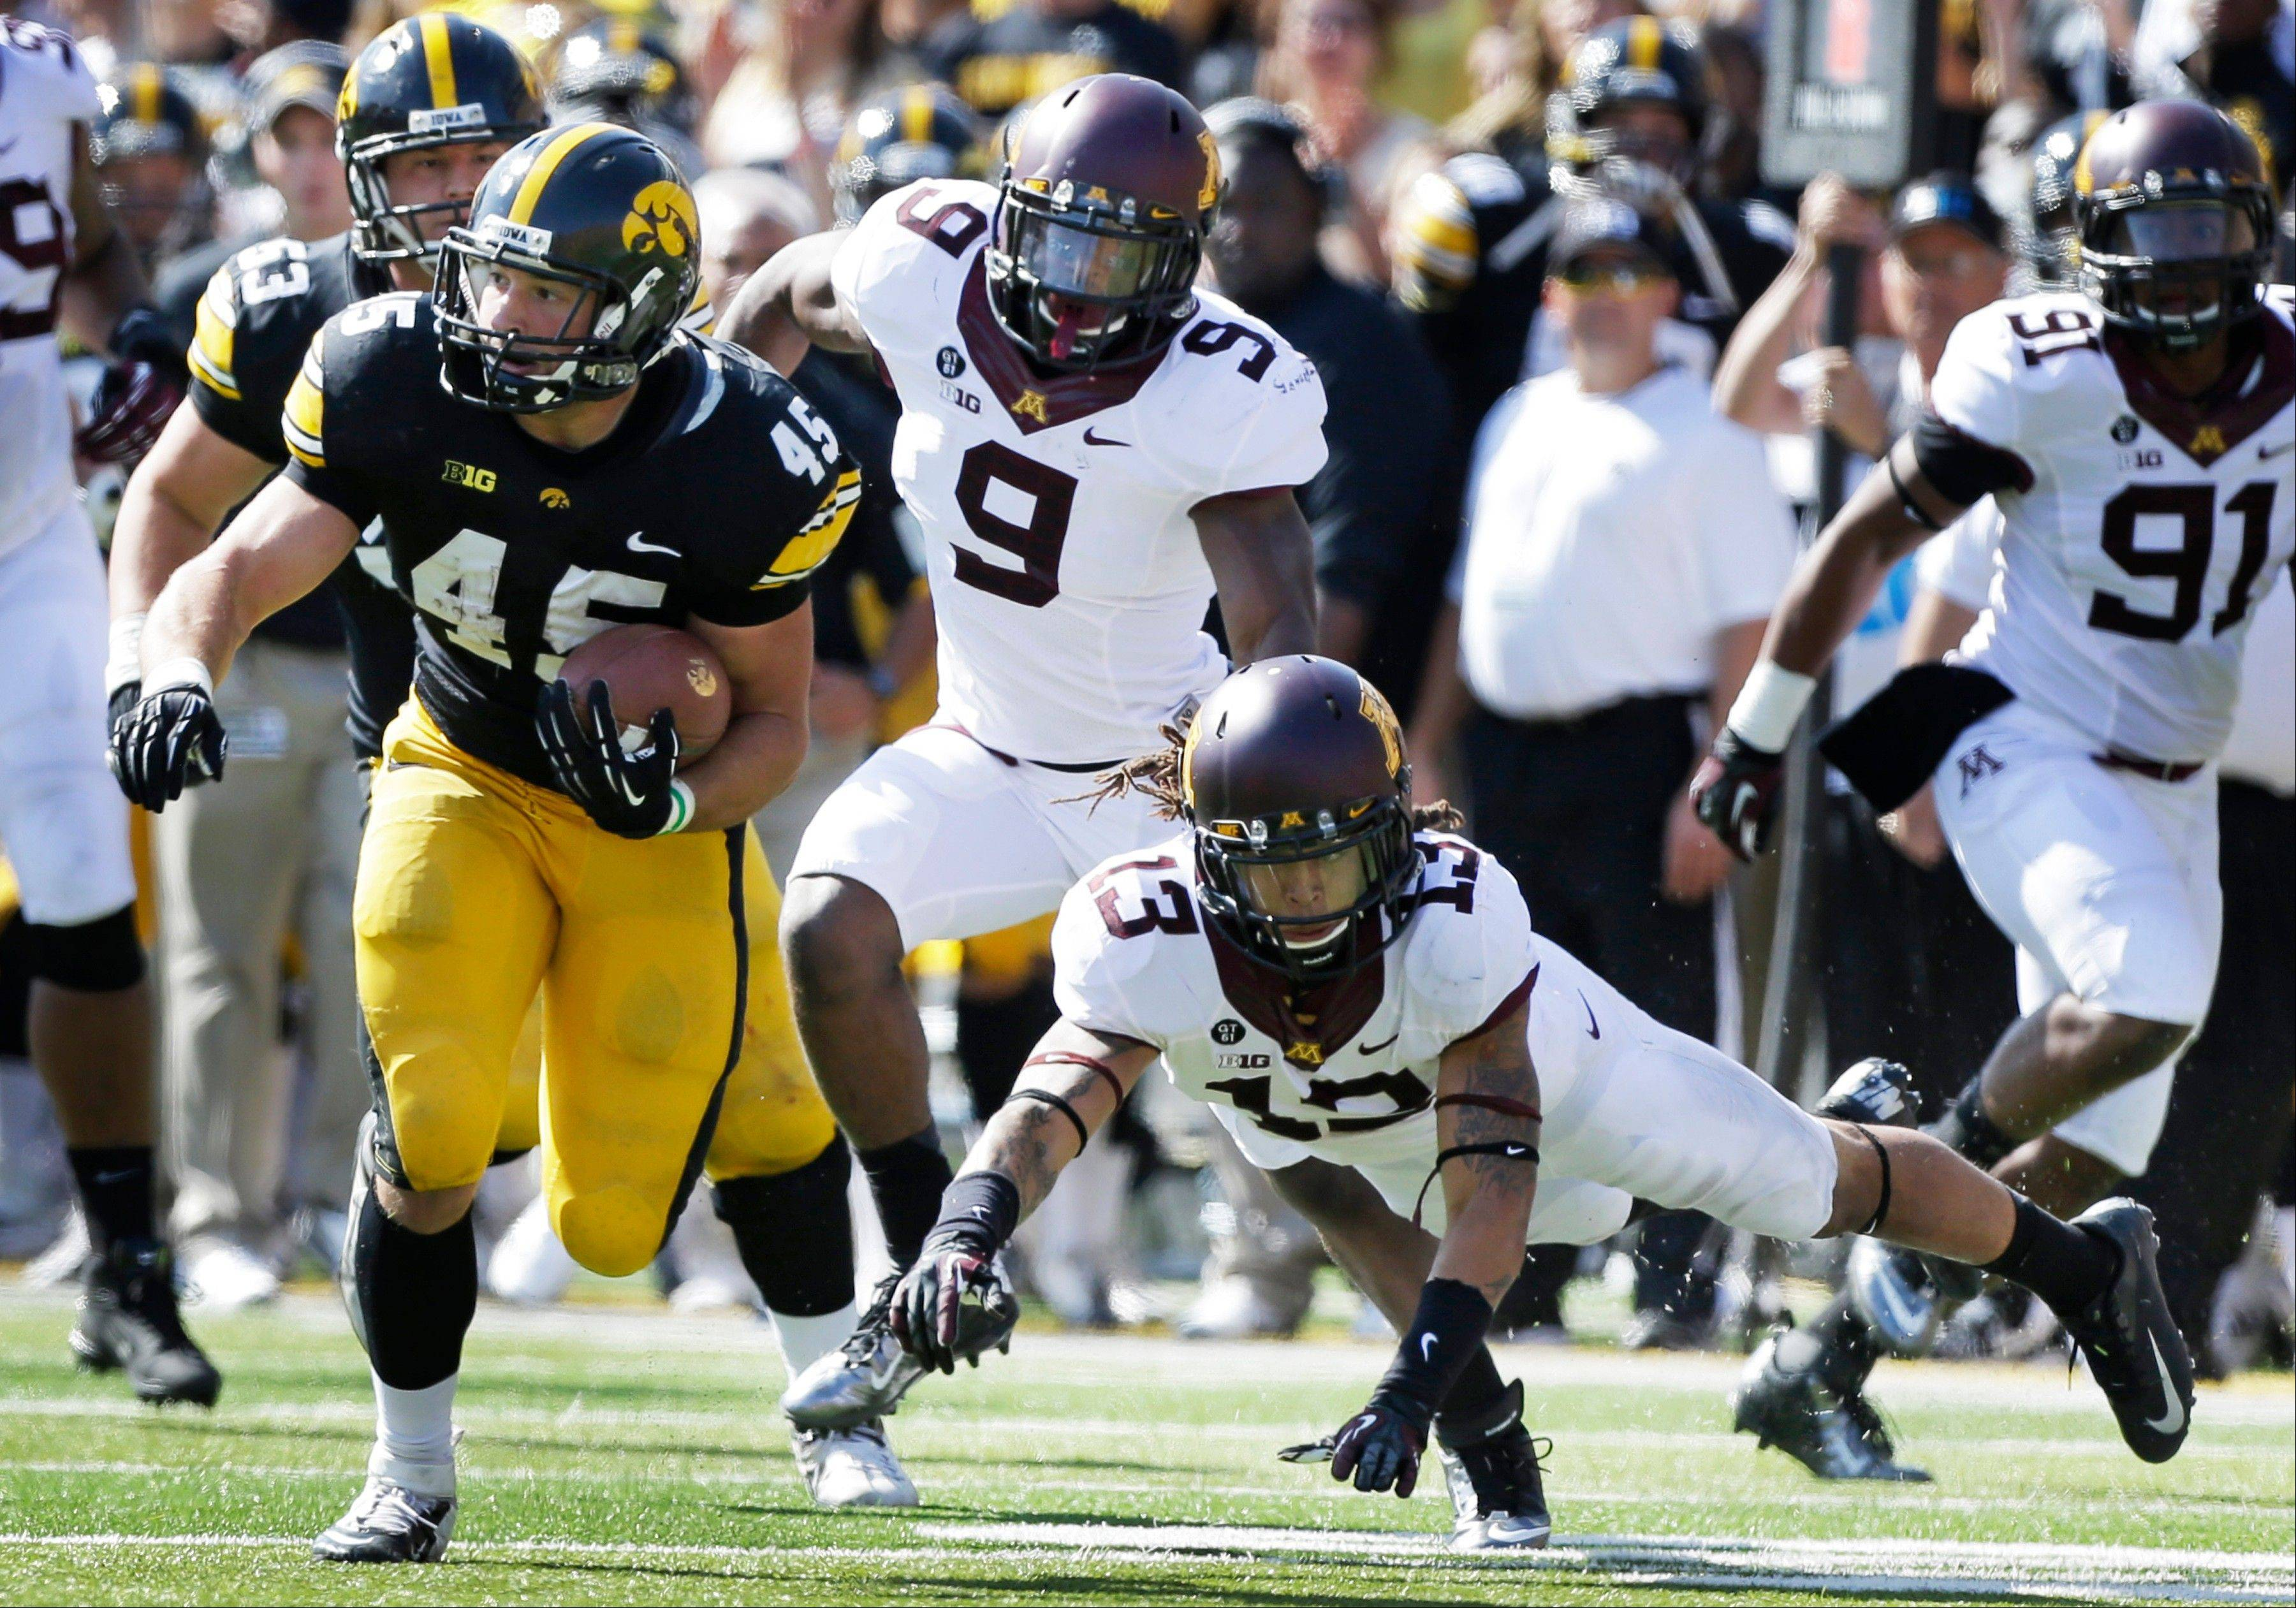 Iowa runs past Minnesota 31-13